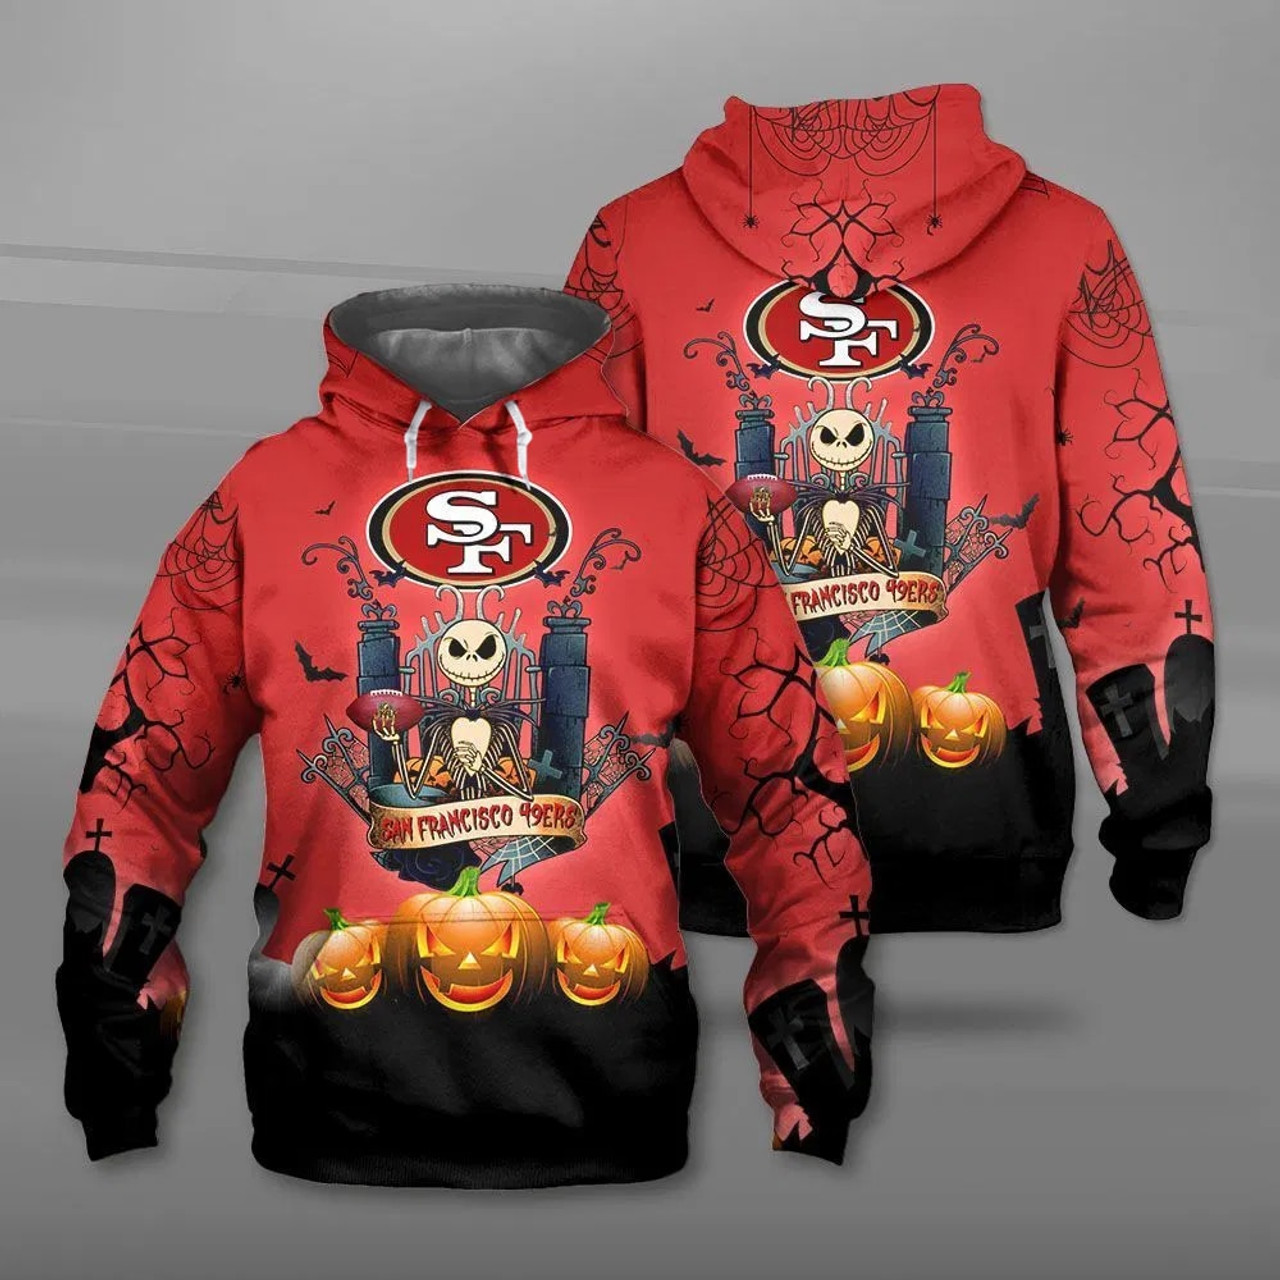 **(NEW-OFFICIAL-N.F.L.SAN-FRANCISCO-49ERS-PULLOVER-HOODIES & CLASSIC-JACK-SKELLINGTON-ANIMATED-HORROR-CHARACTER/3D-CUSTOM-49ERS-LOGOS & OFFICIAL-49ERS-TEAM-COLORS/ALL-OVER-ENTIRE-HOODIE-PRINTED-DESIGN/TRENDY-WARM-PREMIUM-49ERS-PULLOVER-HOODIES)**